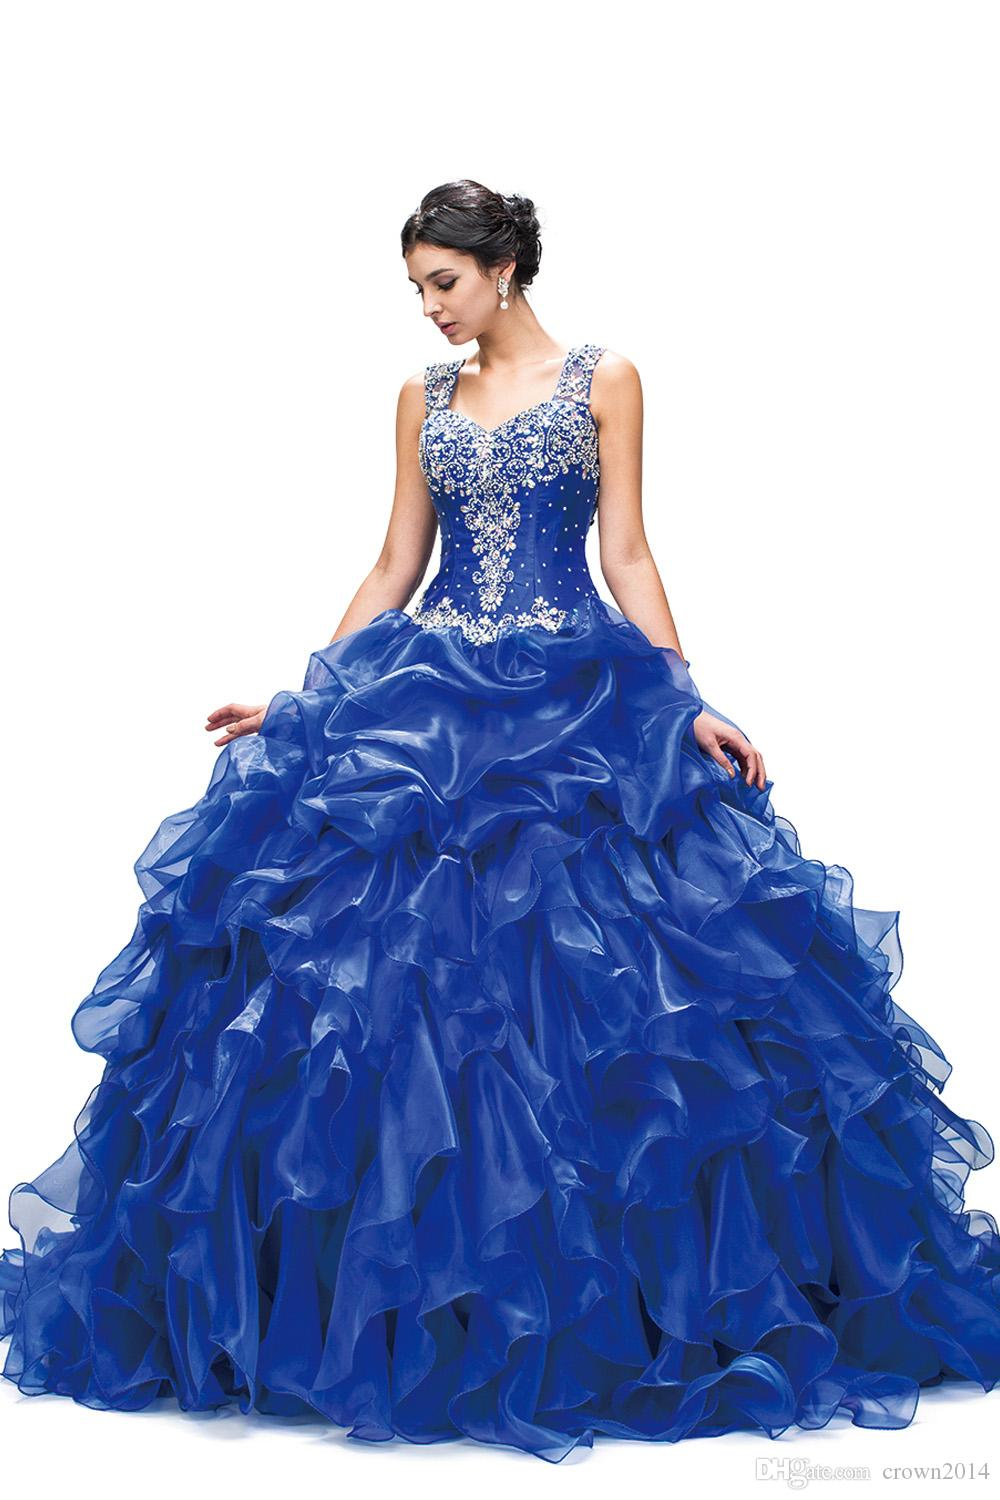 376a56d5d4b 2018 Quinceanera Dresses Royal Blue Ball Gown Organza Ruffled Layered Beaded  Crystal Long Sweep Train Party Prom Ball Gowns Quinceanera Dresses In Pink  ...